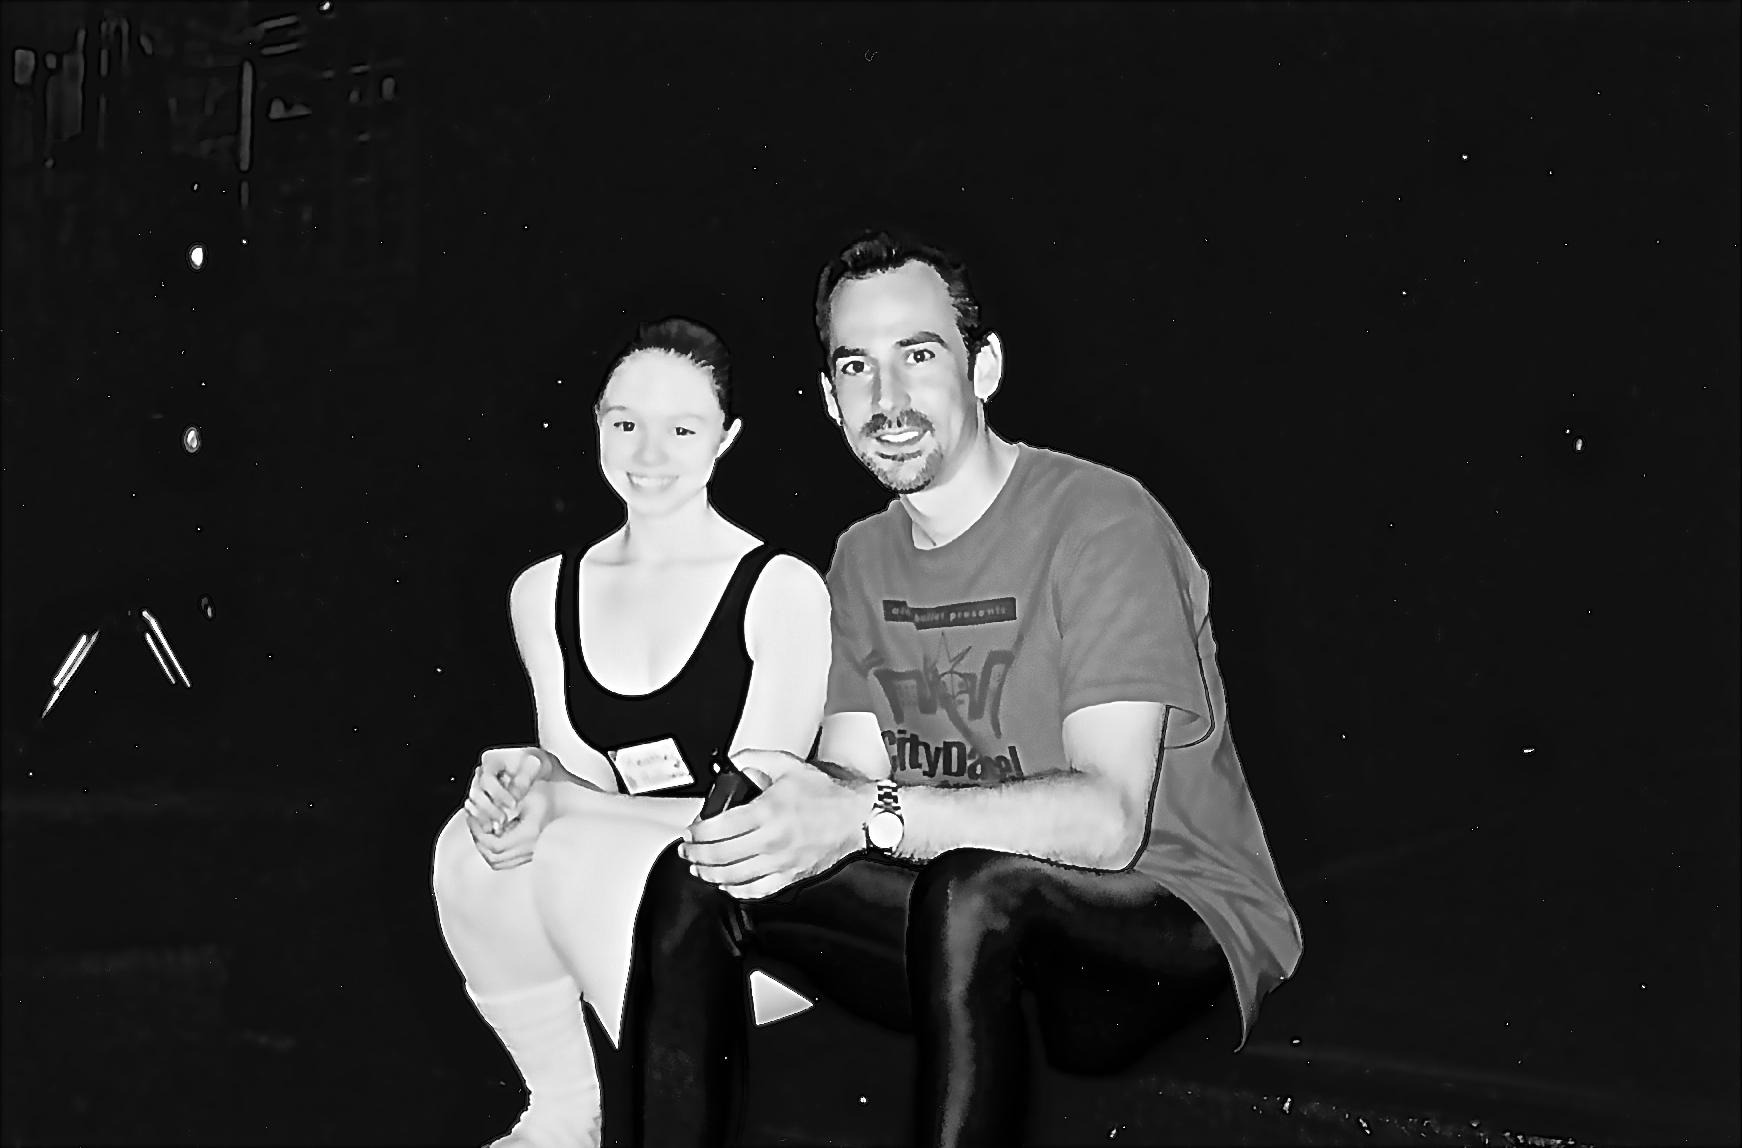 Myself and Wes Chapman at the American Ballet Theater summer workshop that changed my dancing for the better.